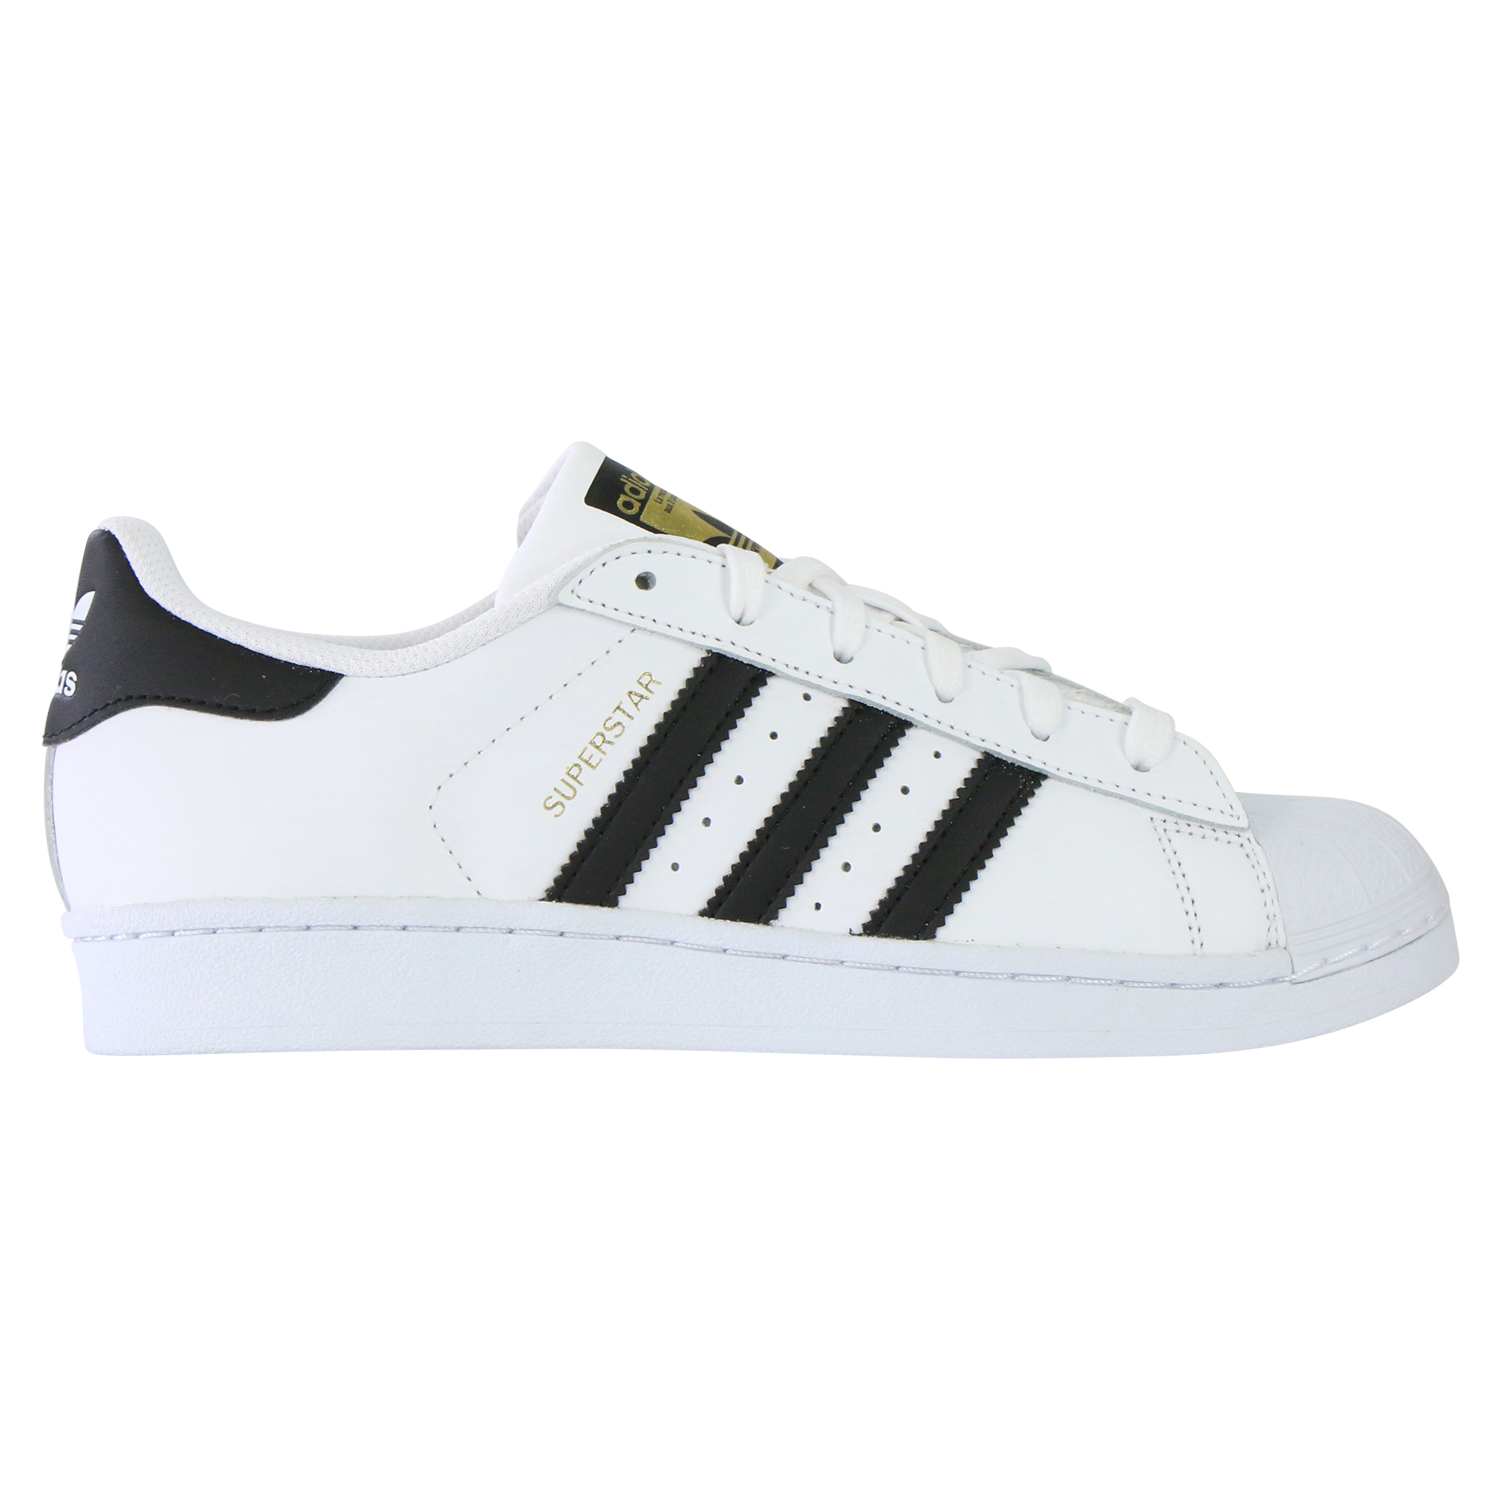 adidas superstar foundation schuhe sneaker turnschuhe. Black Bedroom Furniture Sets. Home Design Ideas